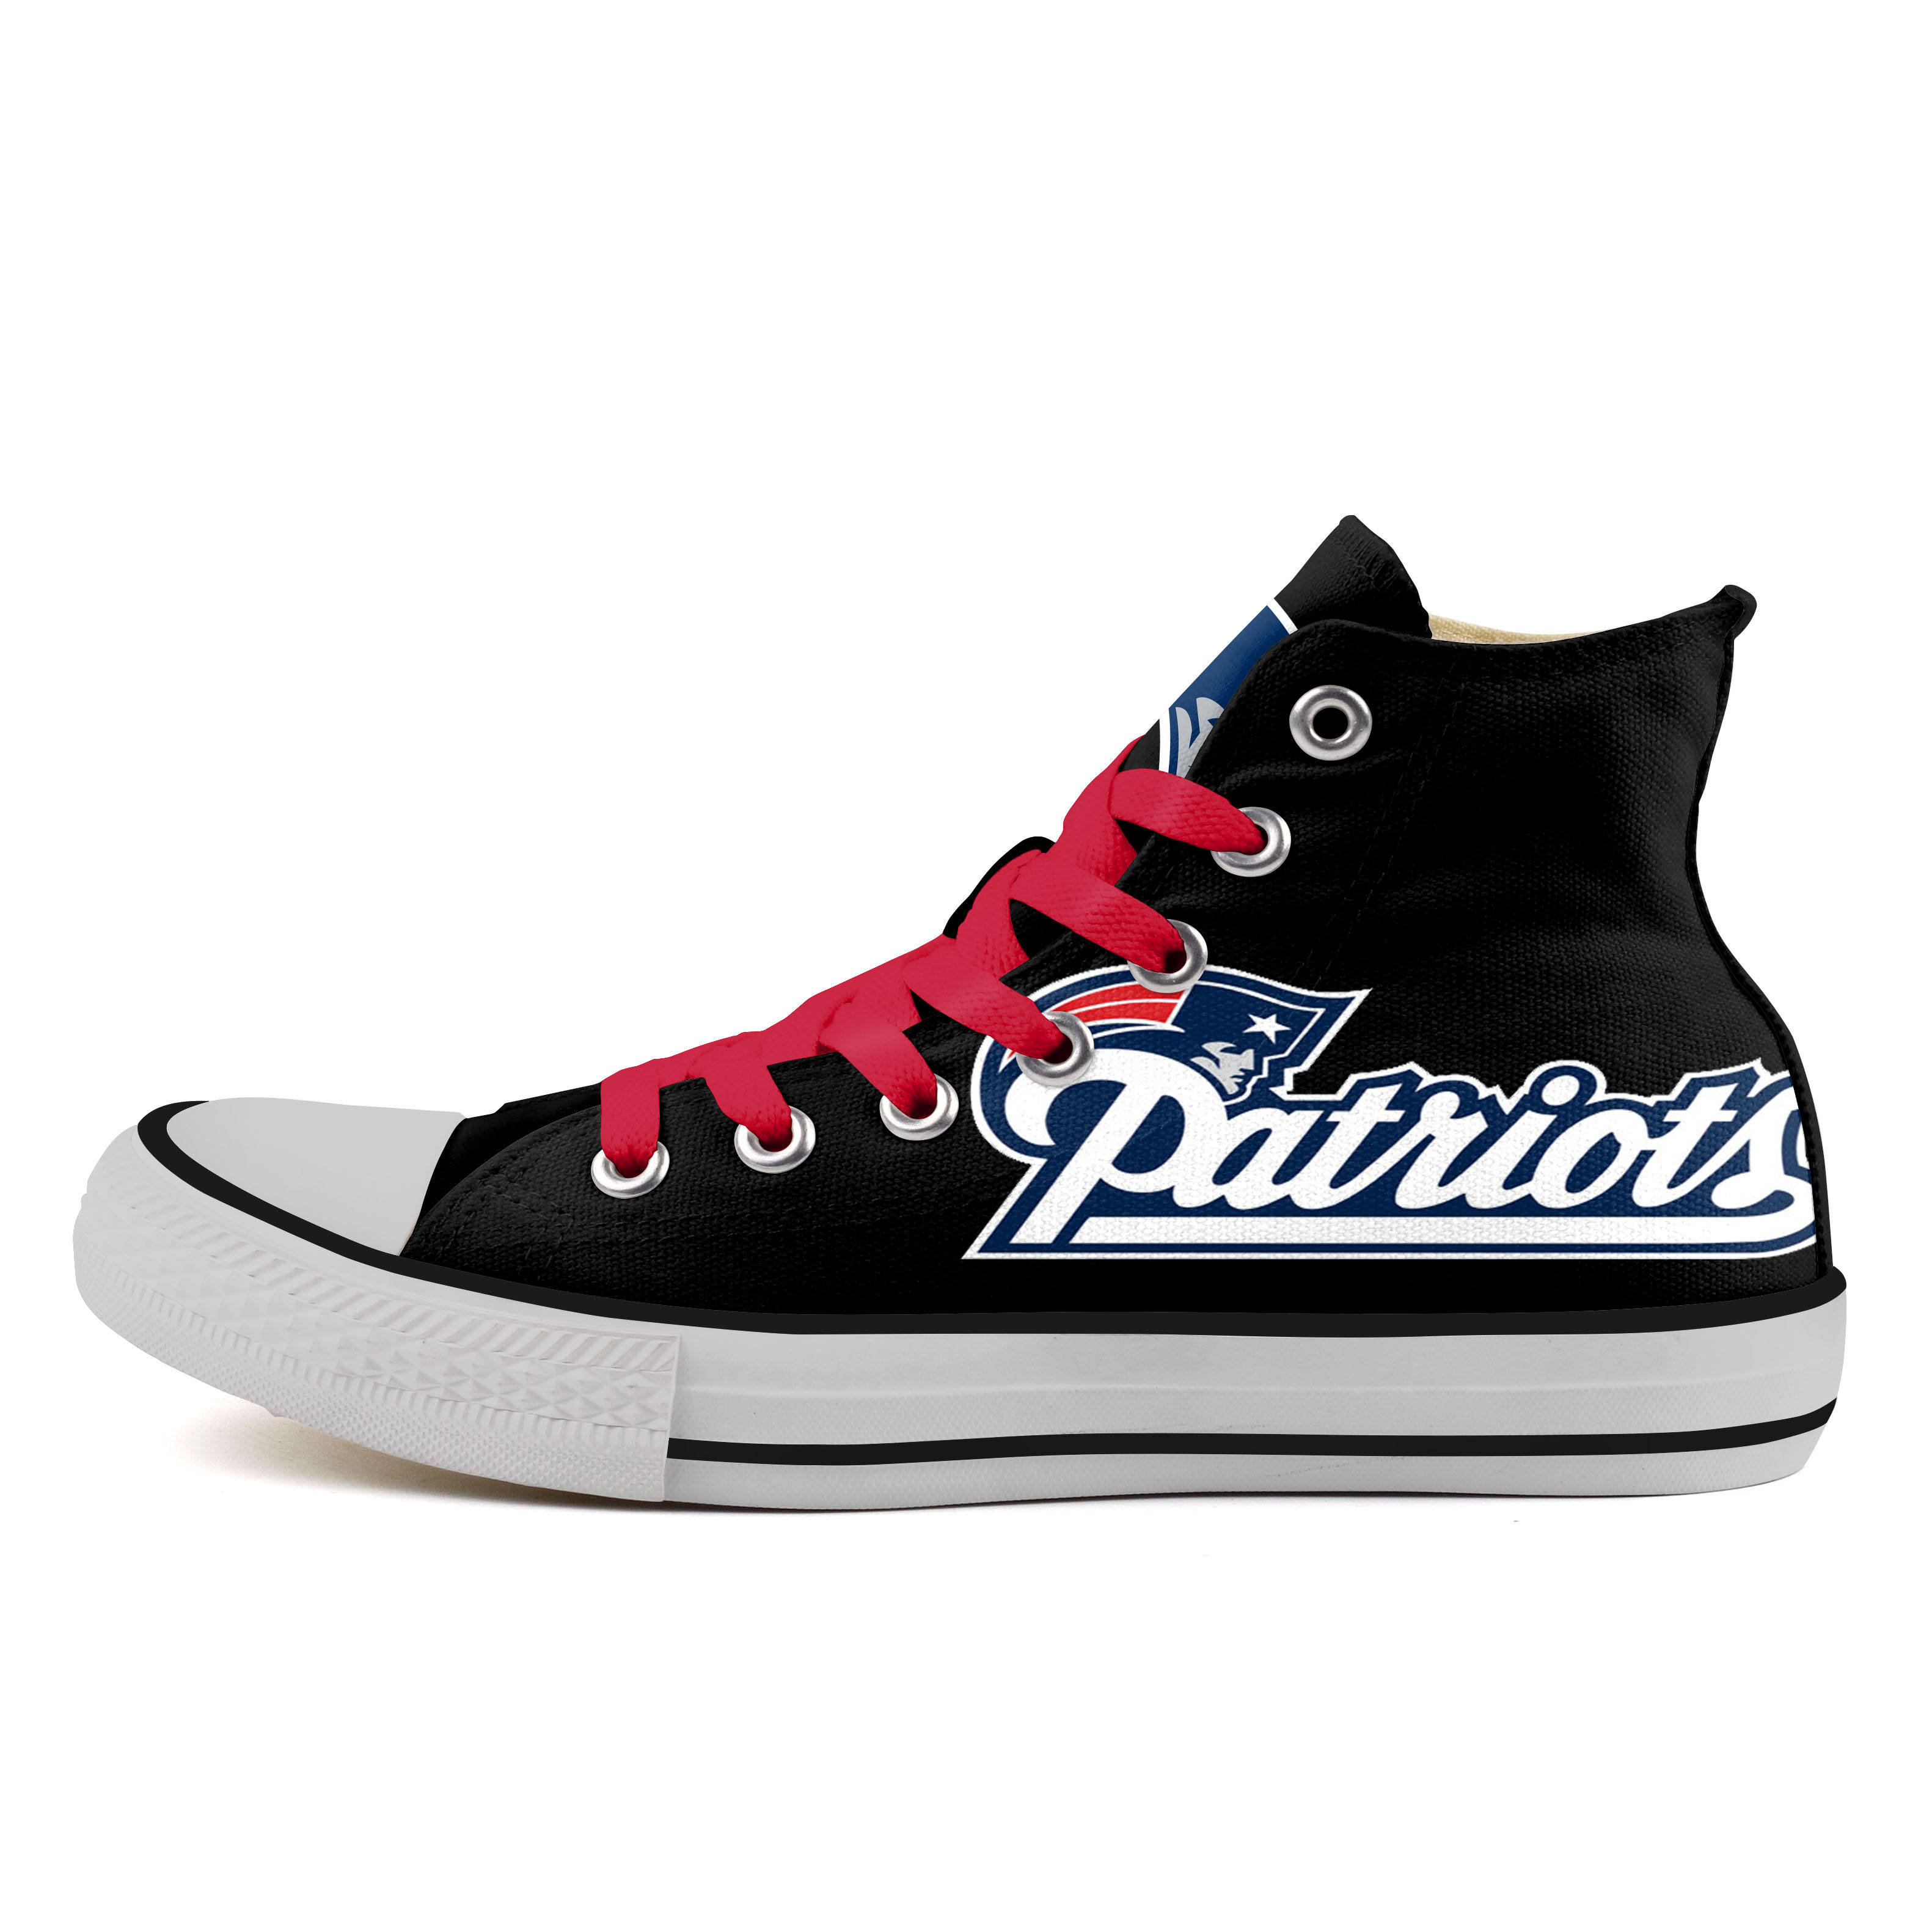 Women's NFL New England Patriots Repeat Print High Top Sneakers 005